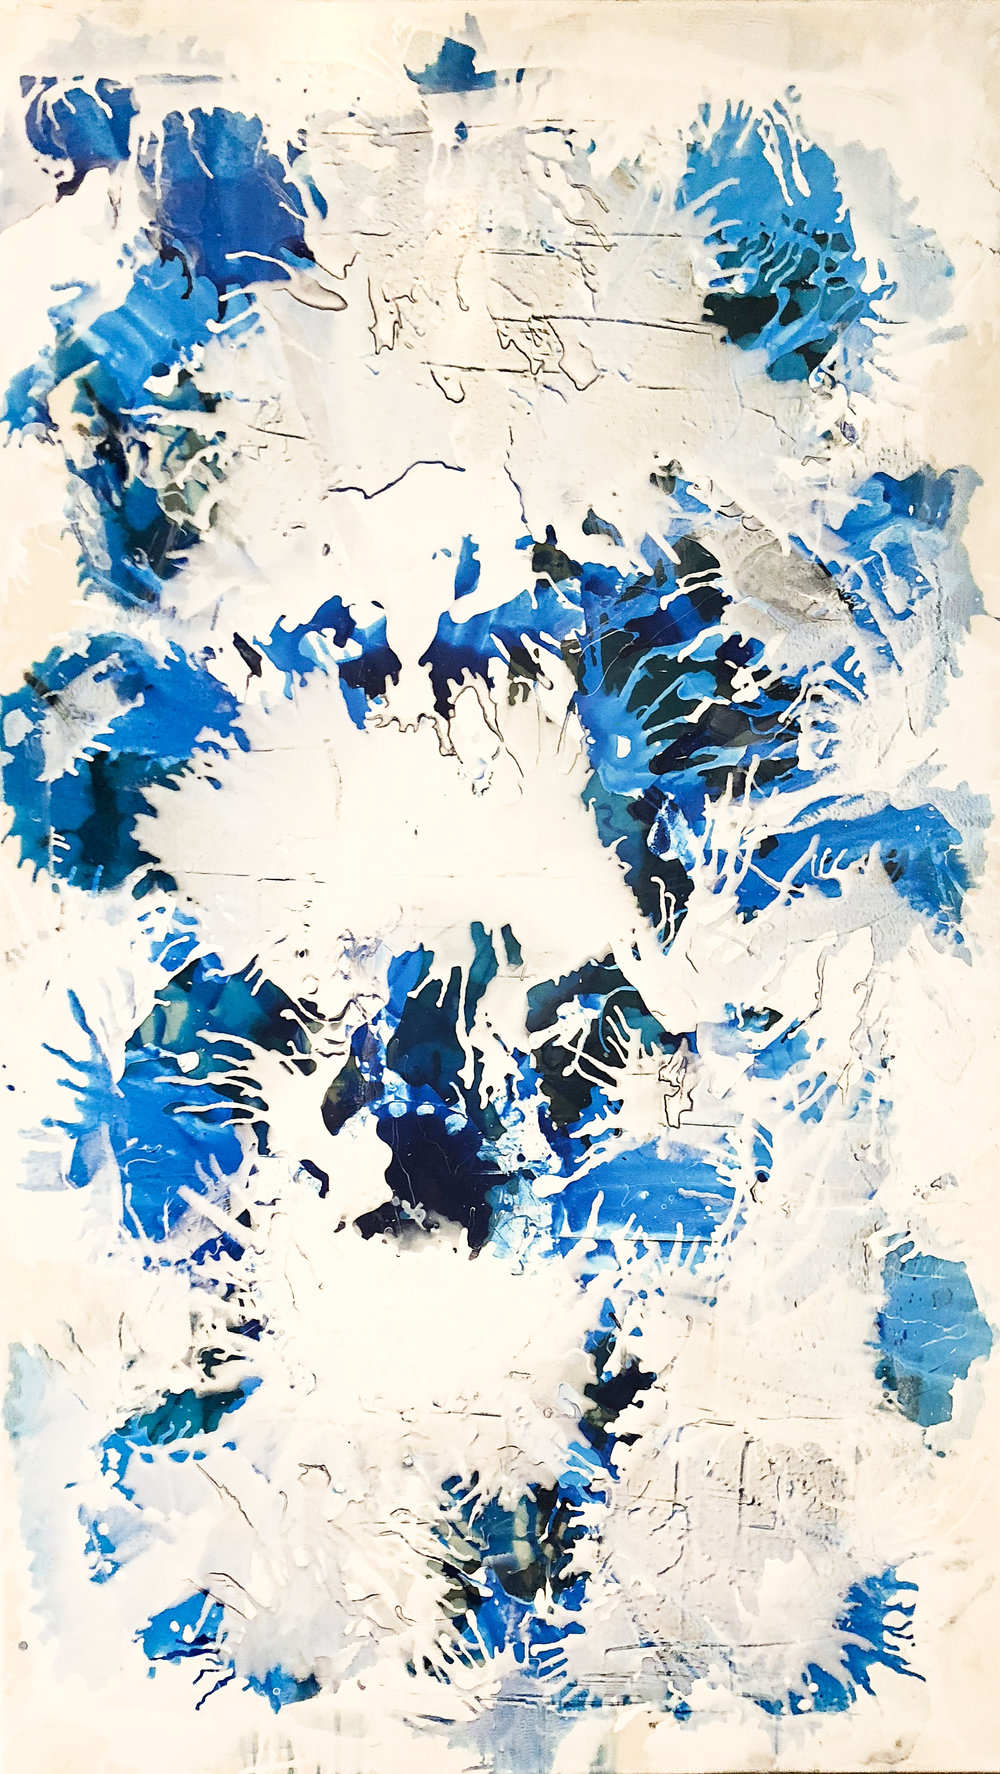 Electric Blue I (60 1/2 x 36)